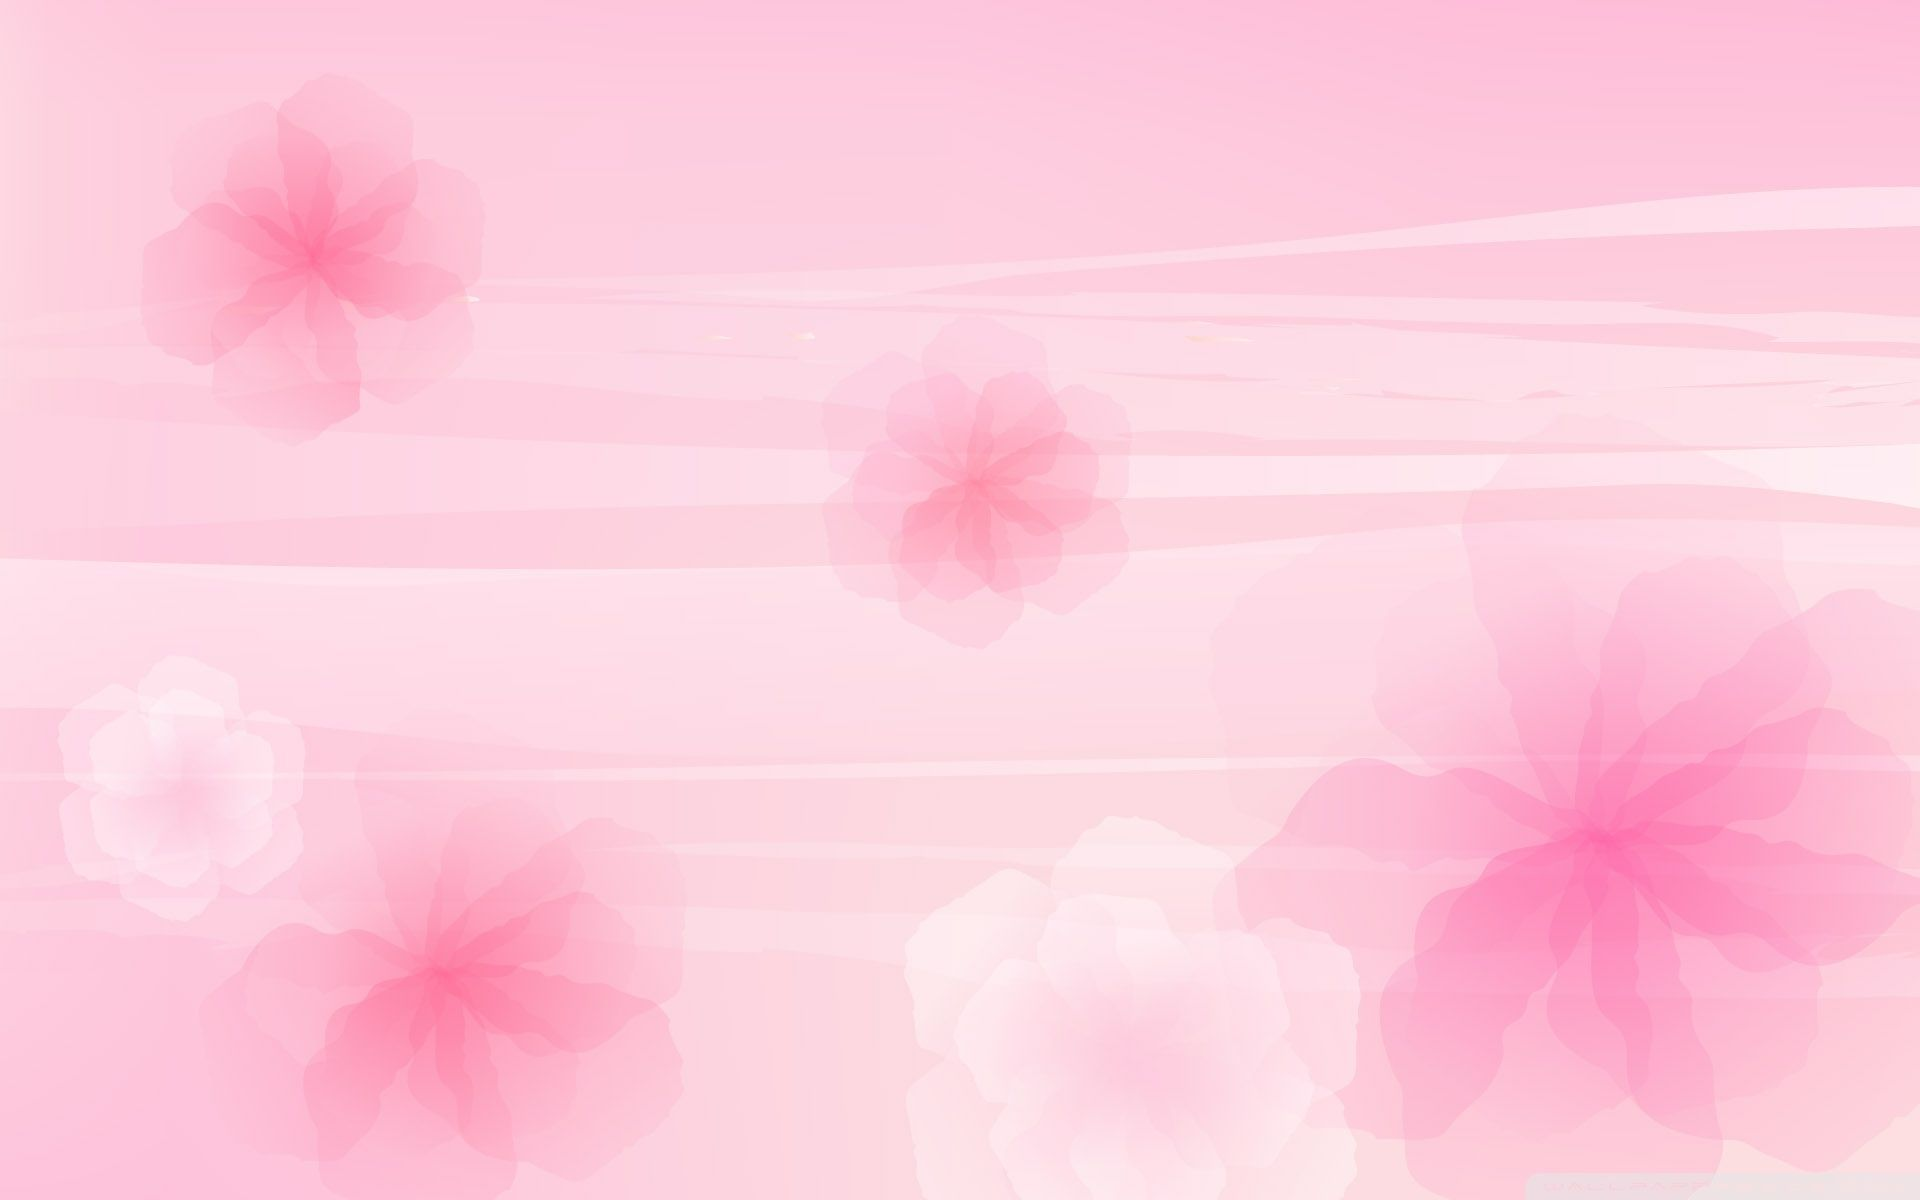 1920x1200 - Background Pink 17